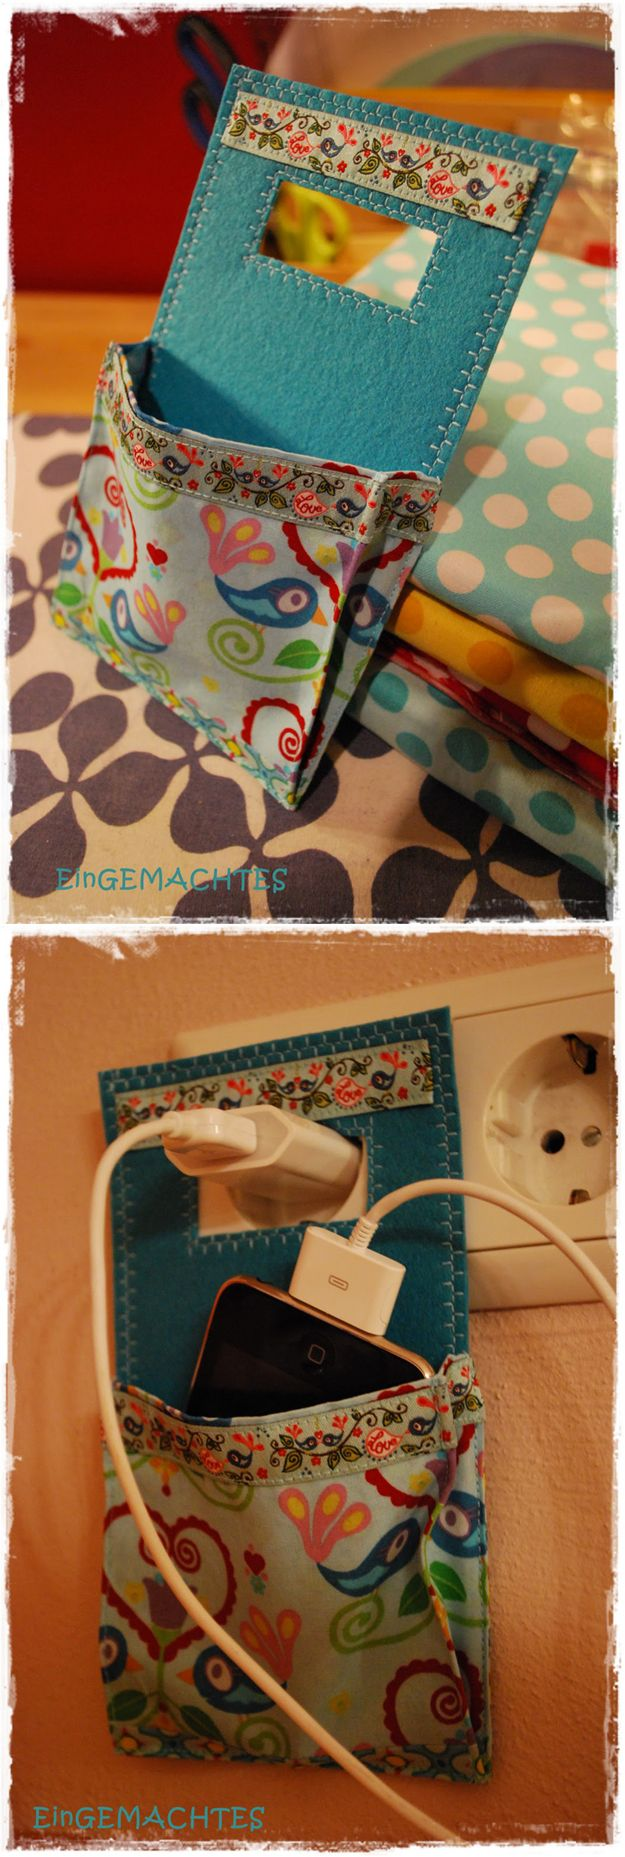 DIY Crafts Phone Charger Holder